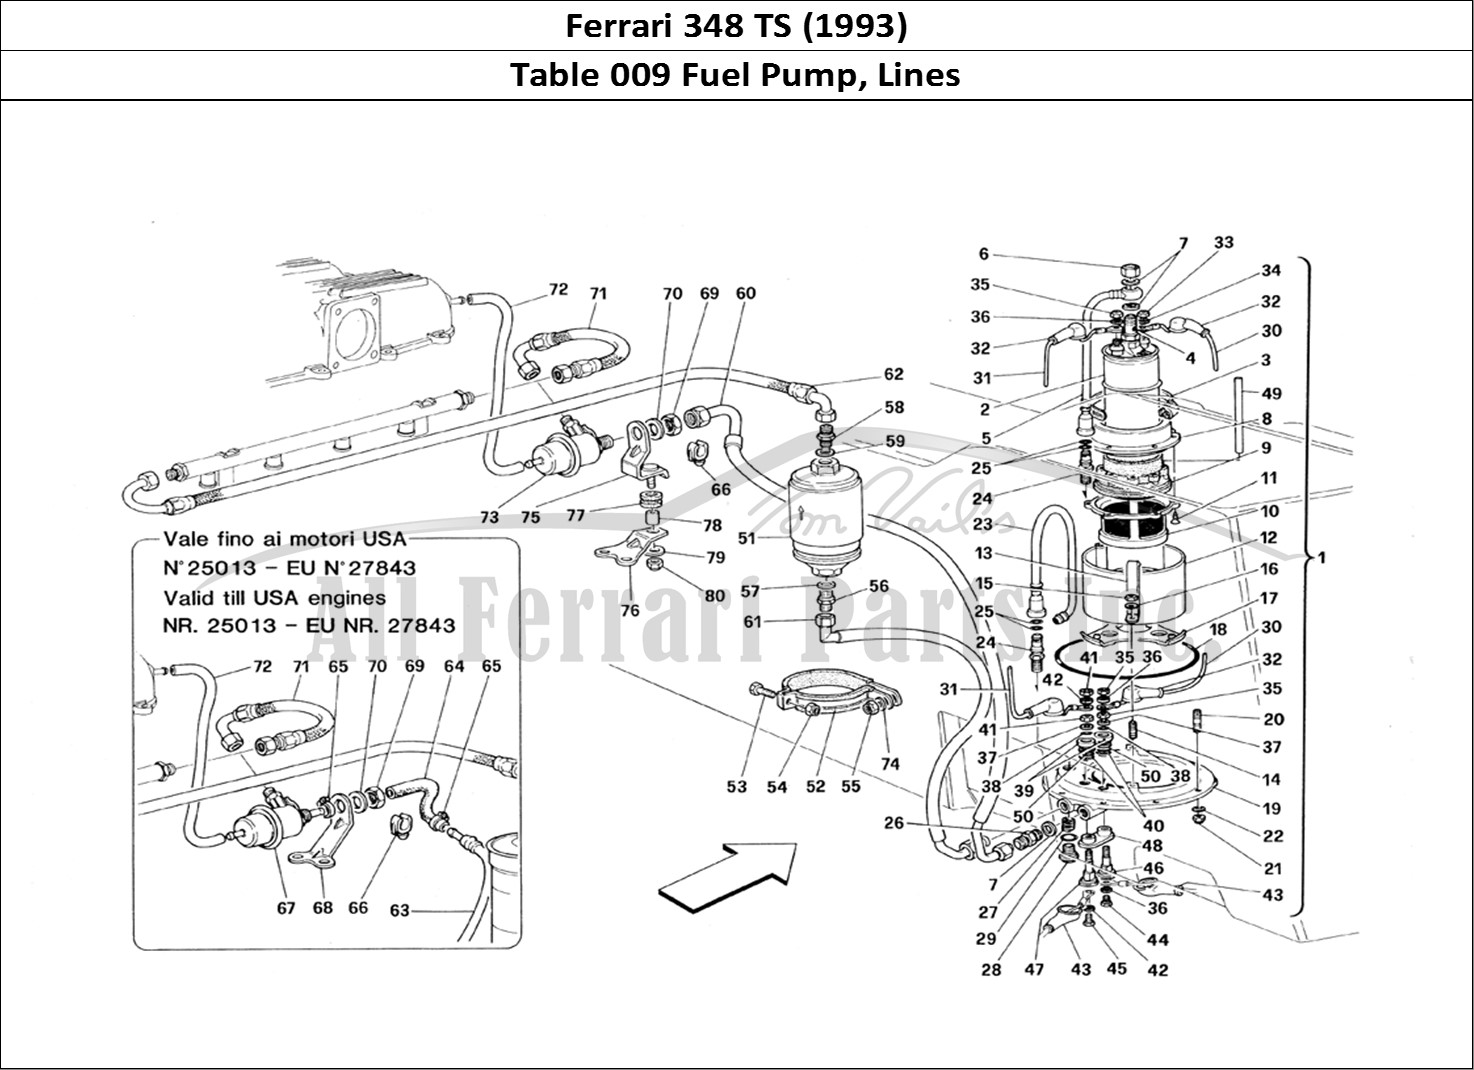 buy original ferrari 348 ts  1993  009 fuel pump  lines